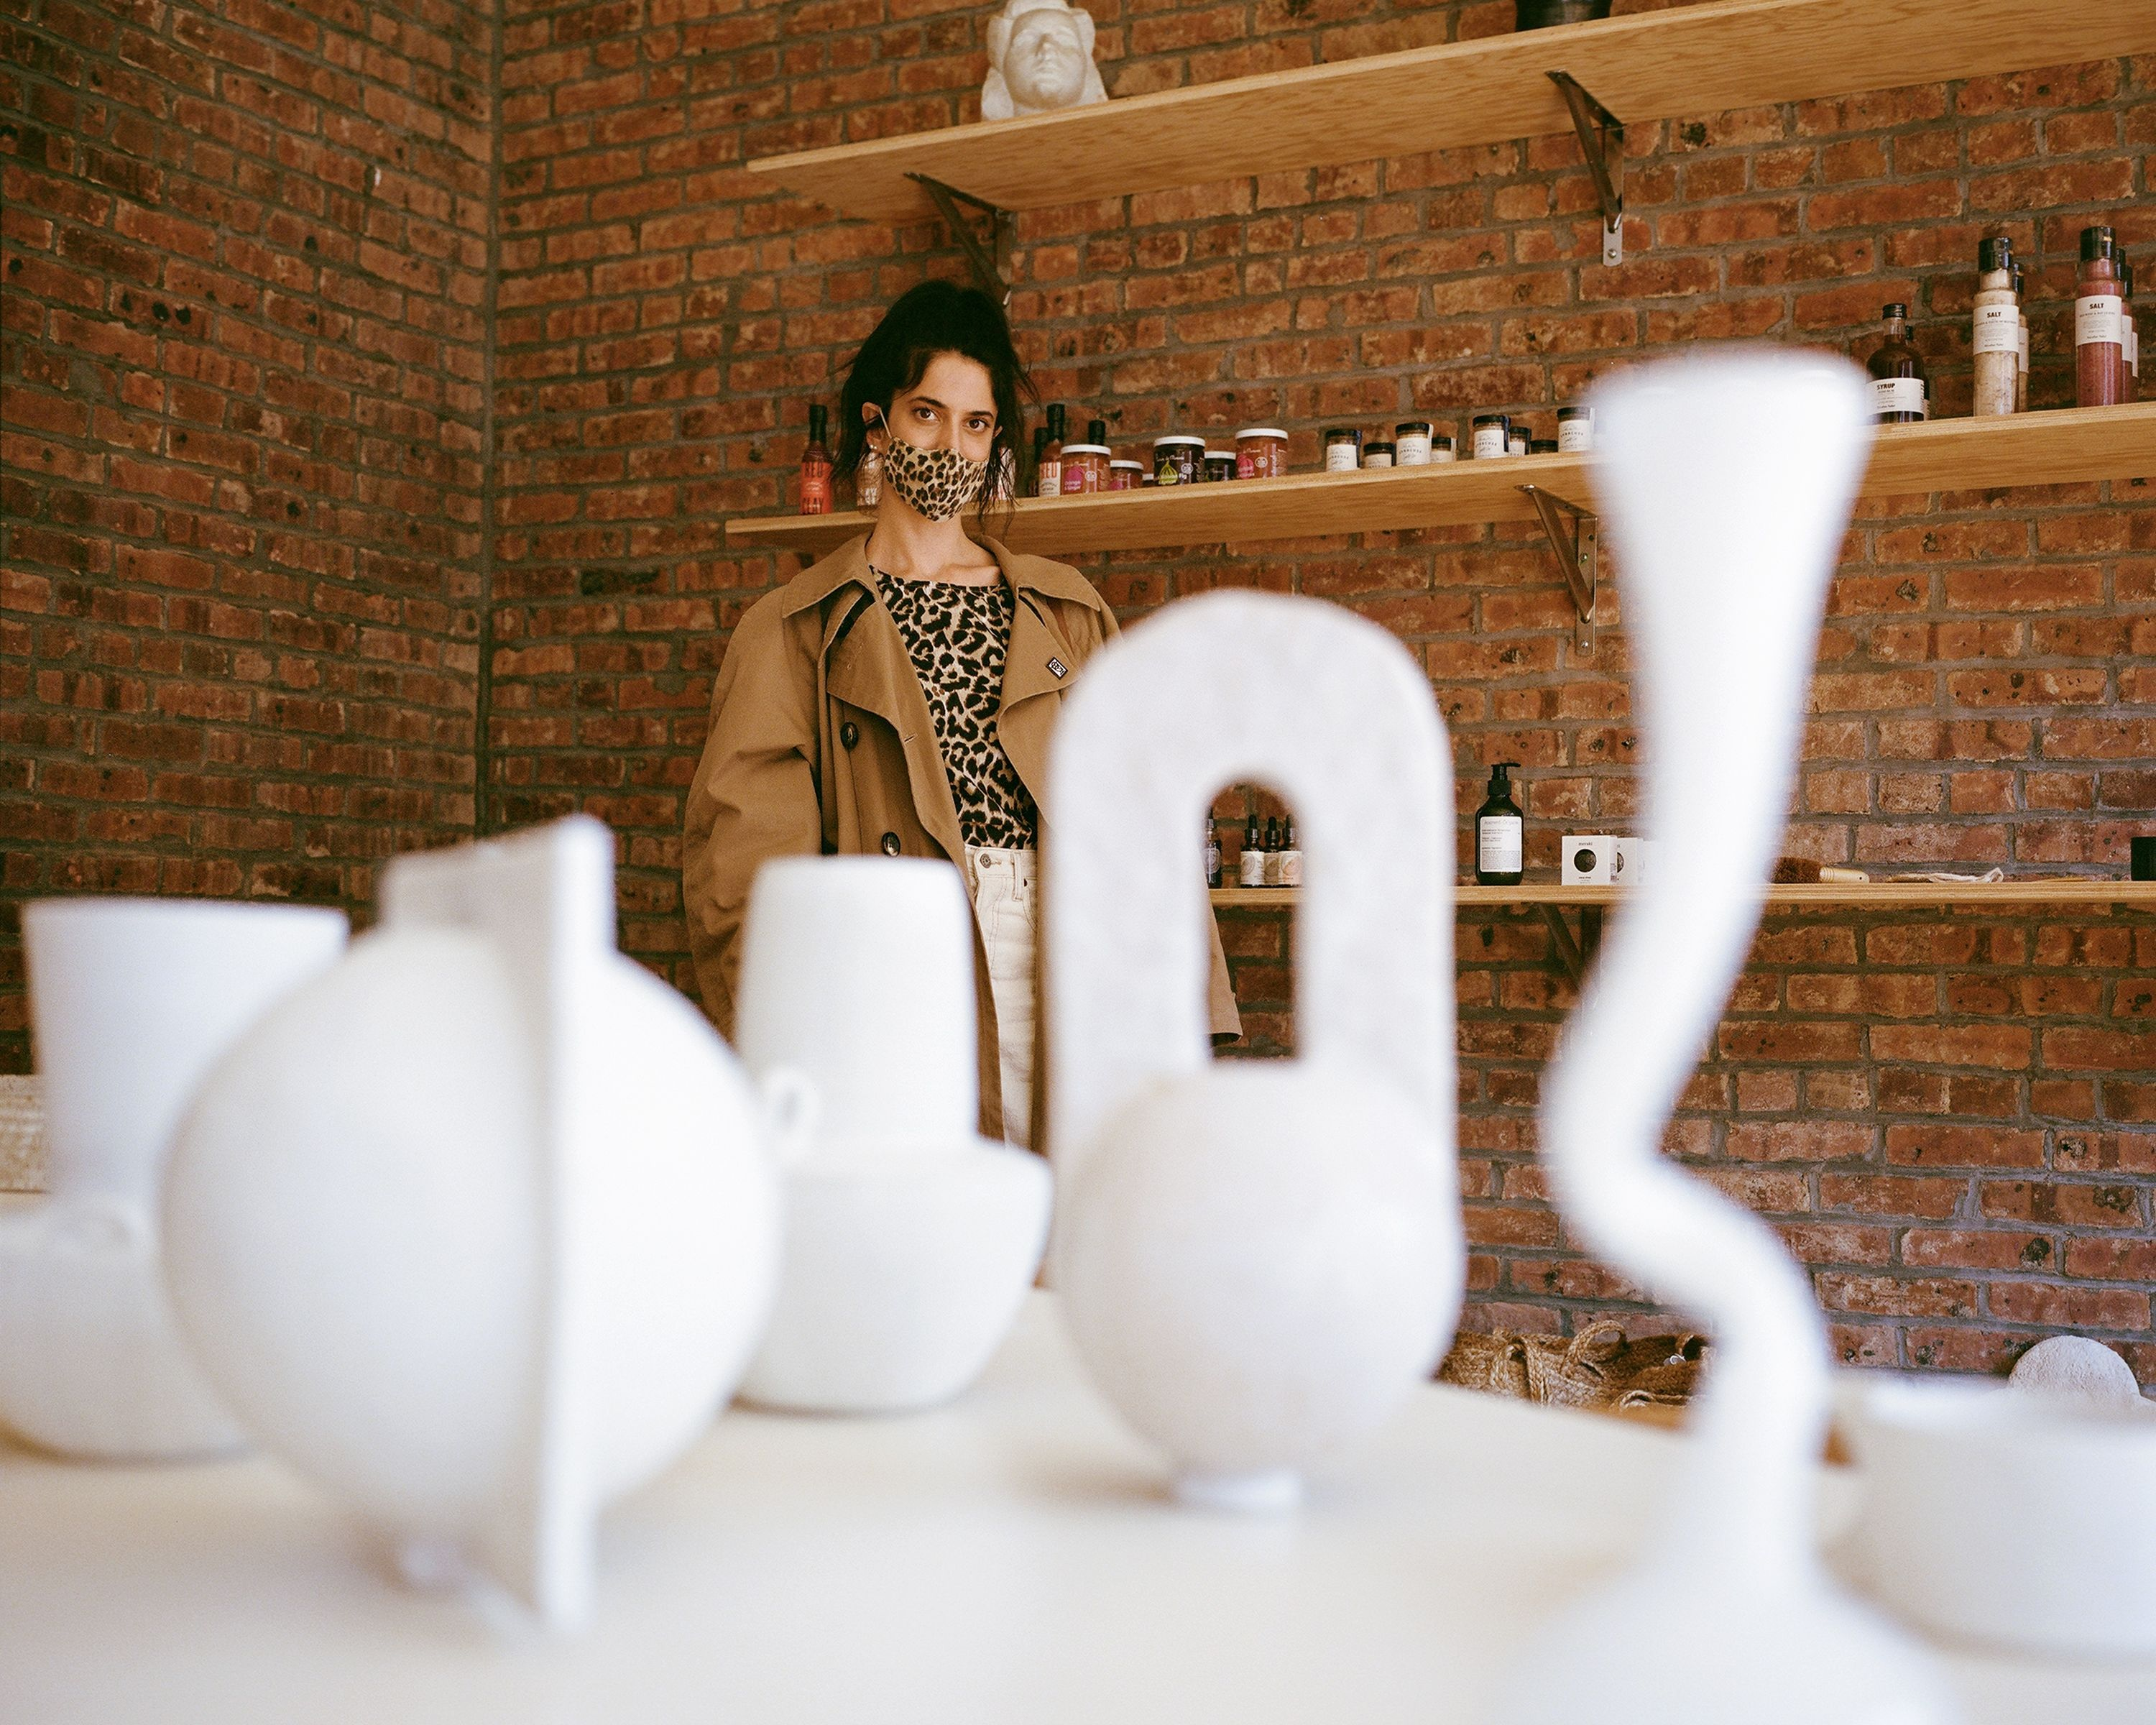 Anna Polonsky posing in front of sculptural vases at Raini Home in bedford-stuyvesant